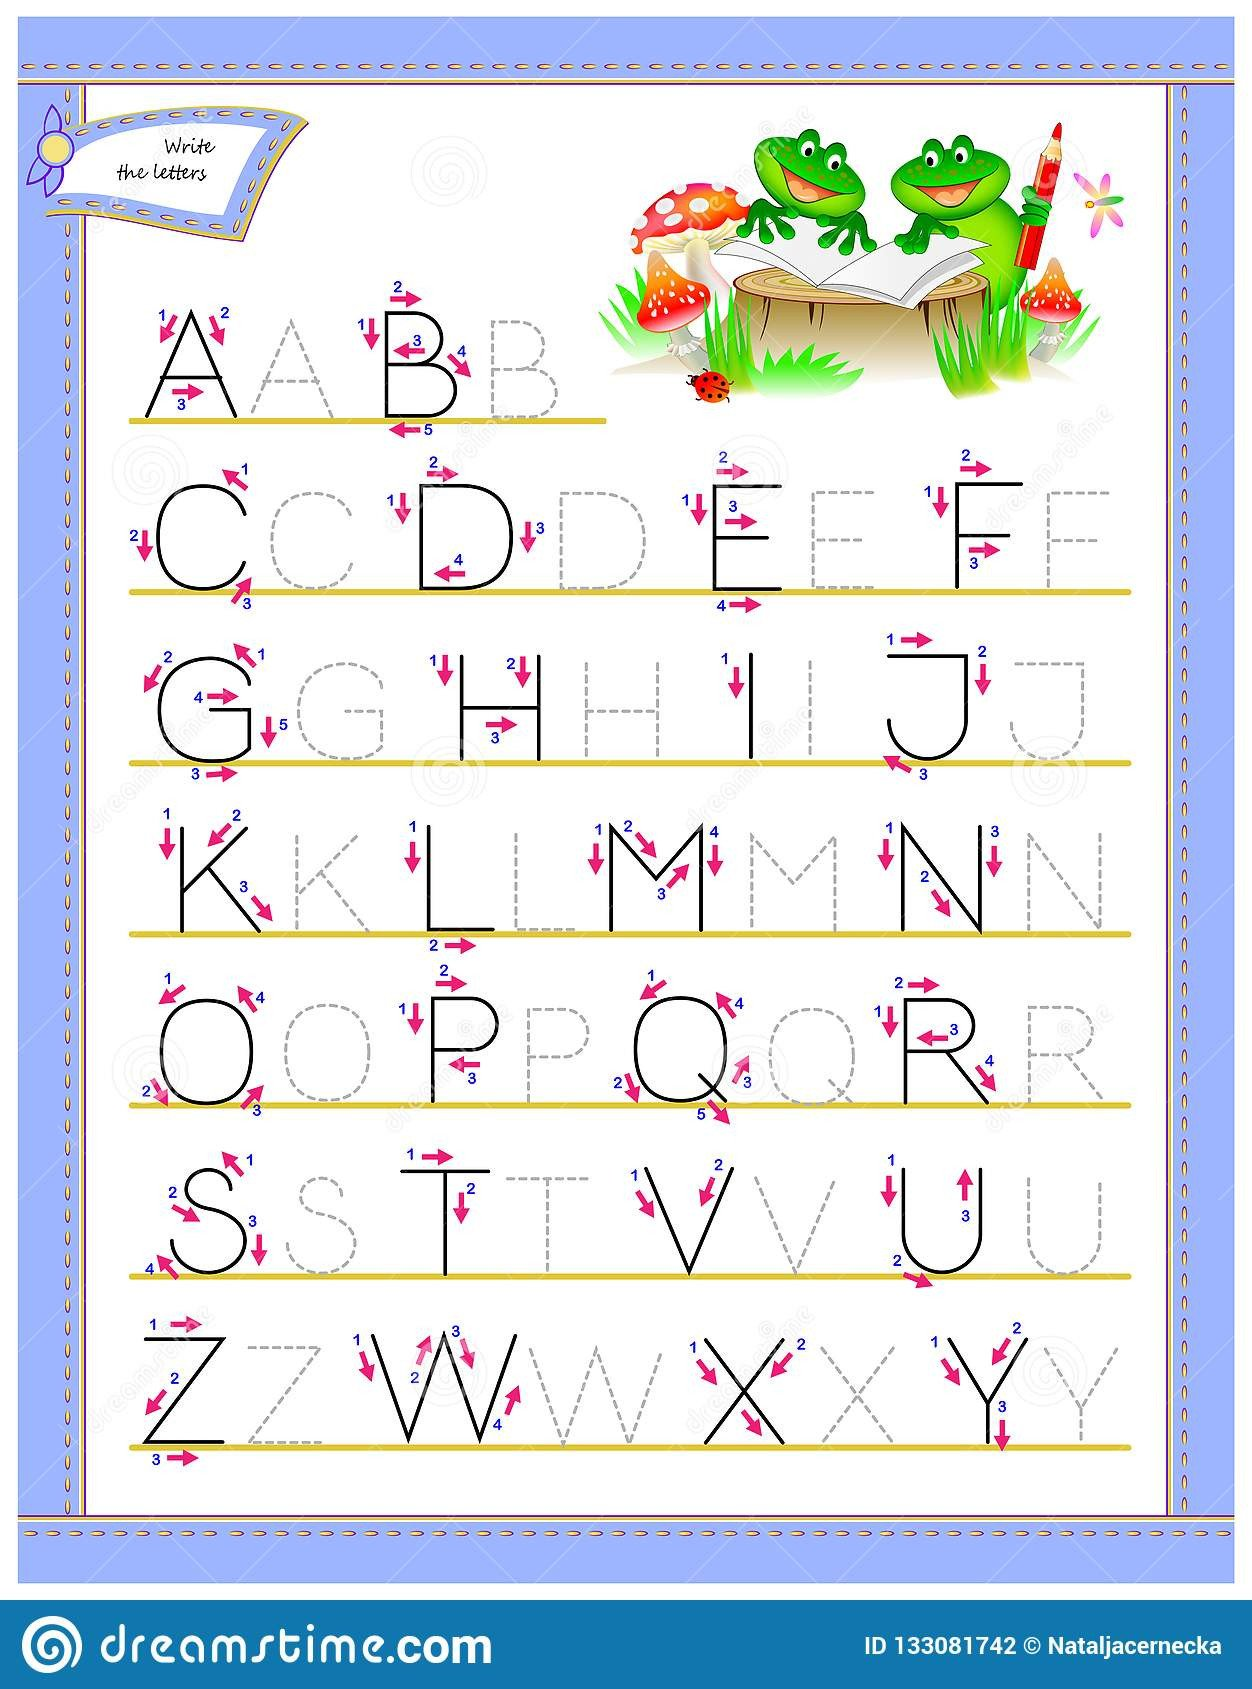 vector image developing children skills drawing coloring scale to any size loss resolution tracing abc letters